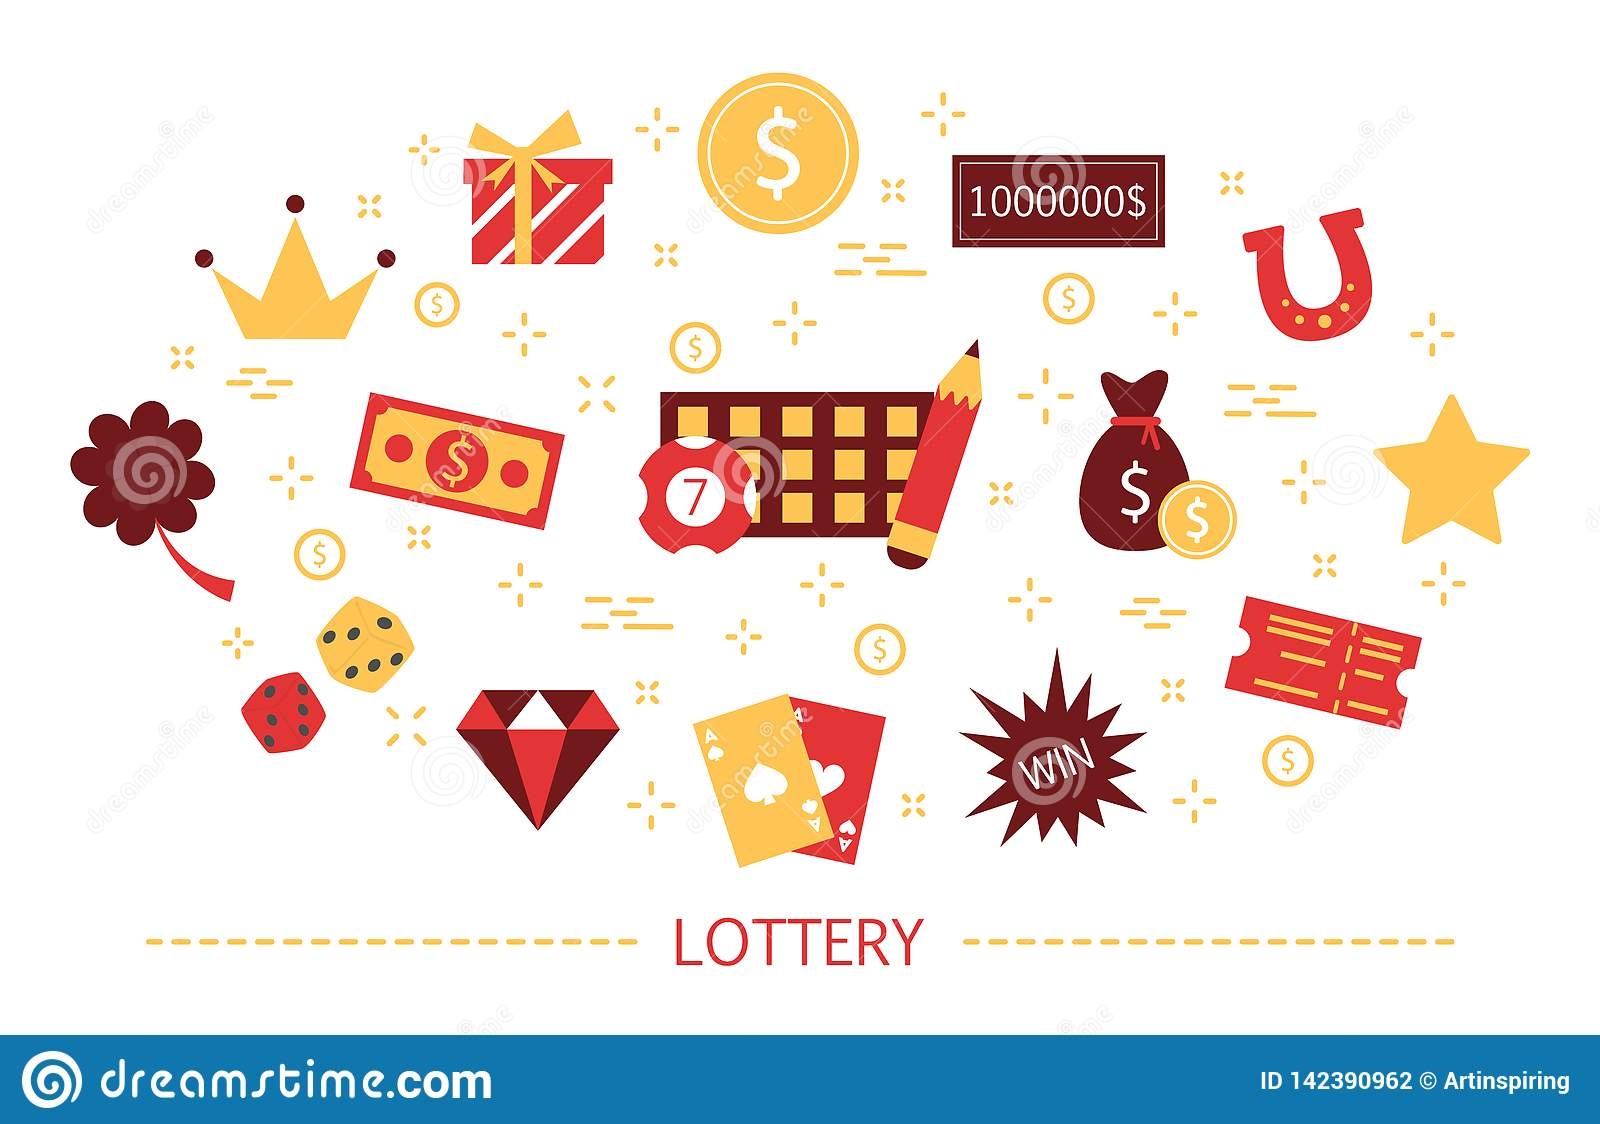 Lottery concept. Gamble and bingo. Play game